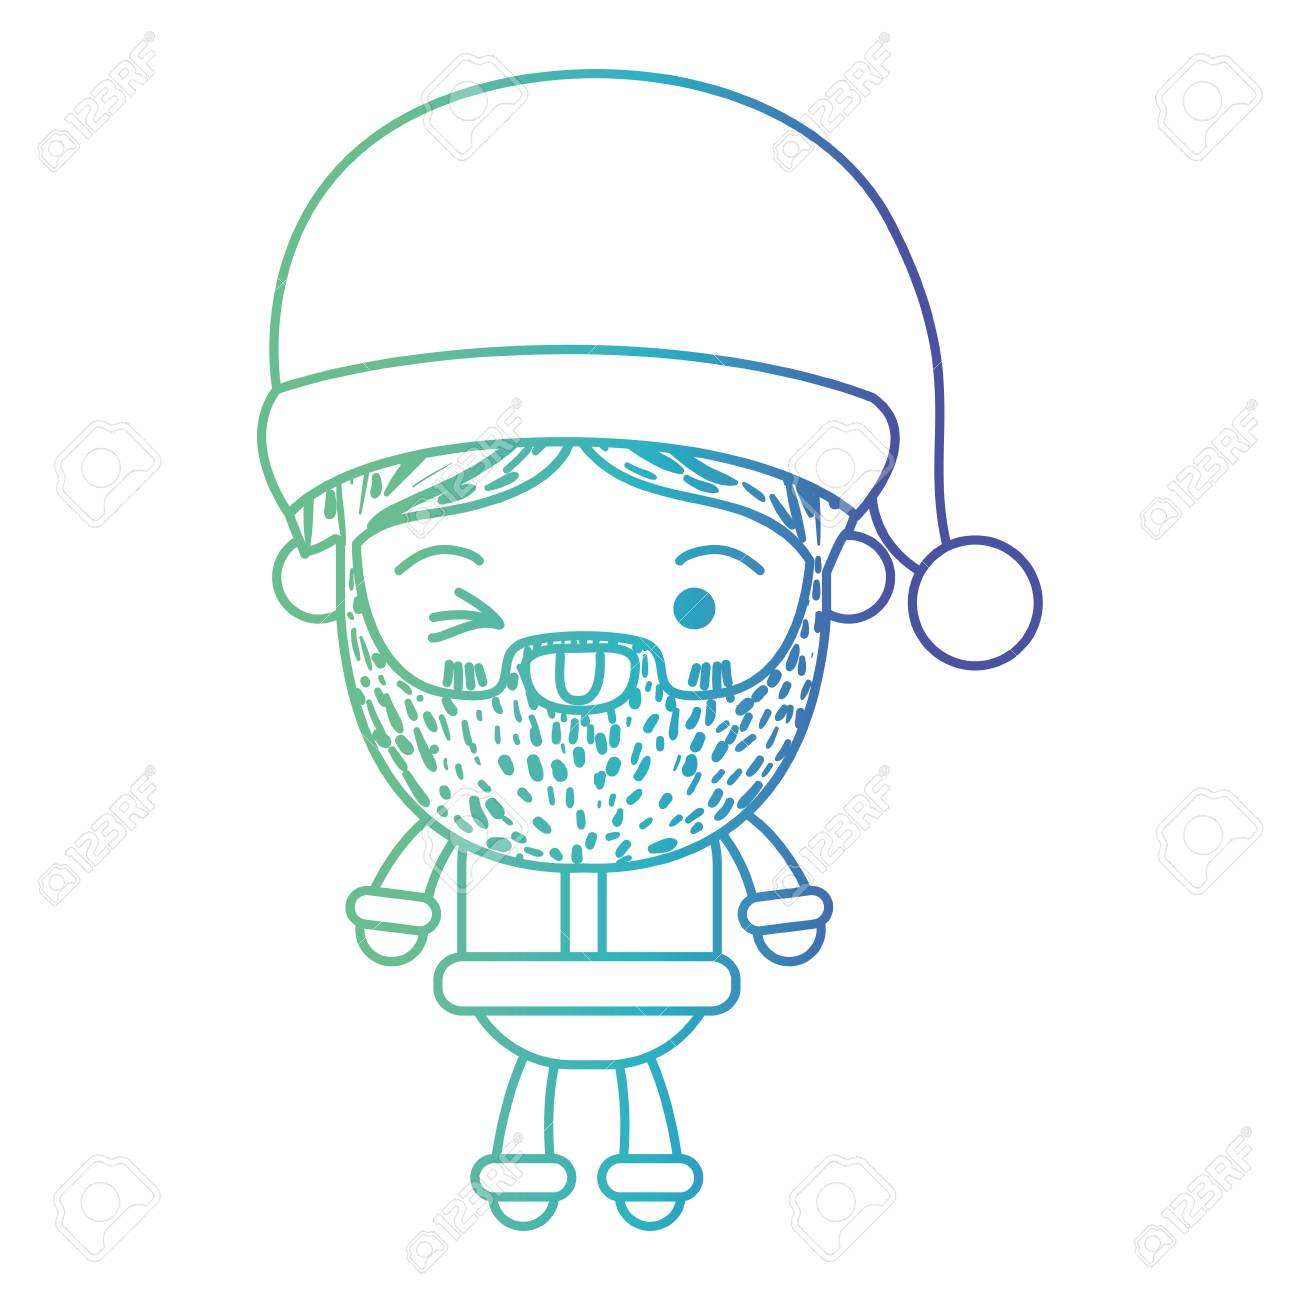 santa claus man kawaii full body cartoon wink eye expression rh 123rf com Man Winking Clip Art Lady Winking Eye Clip Art